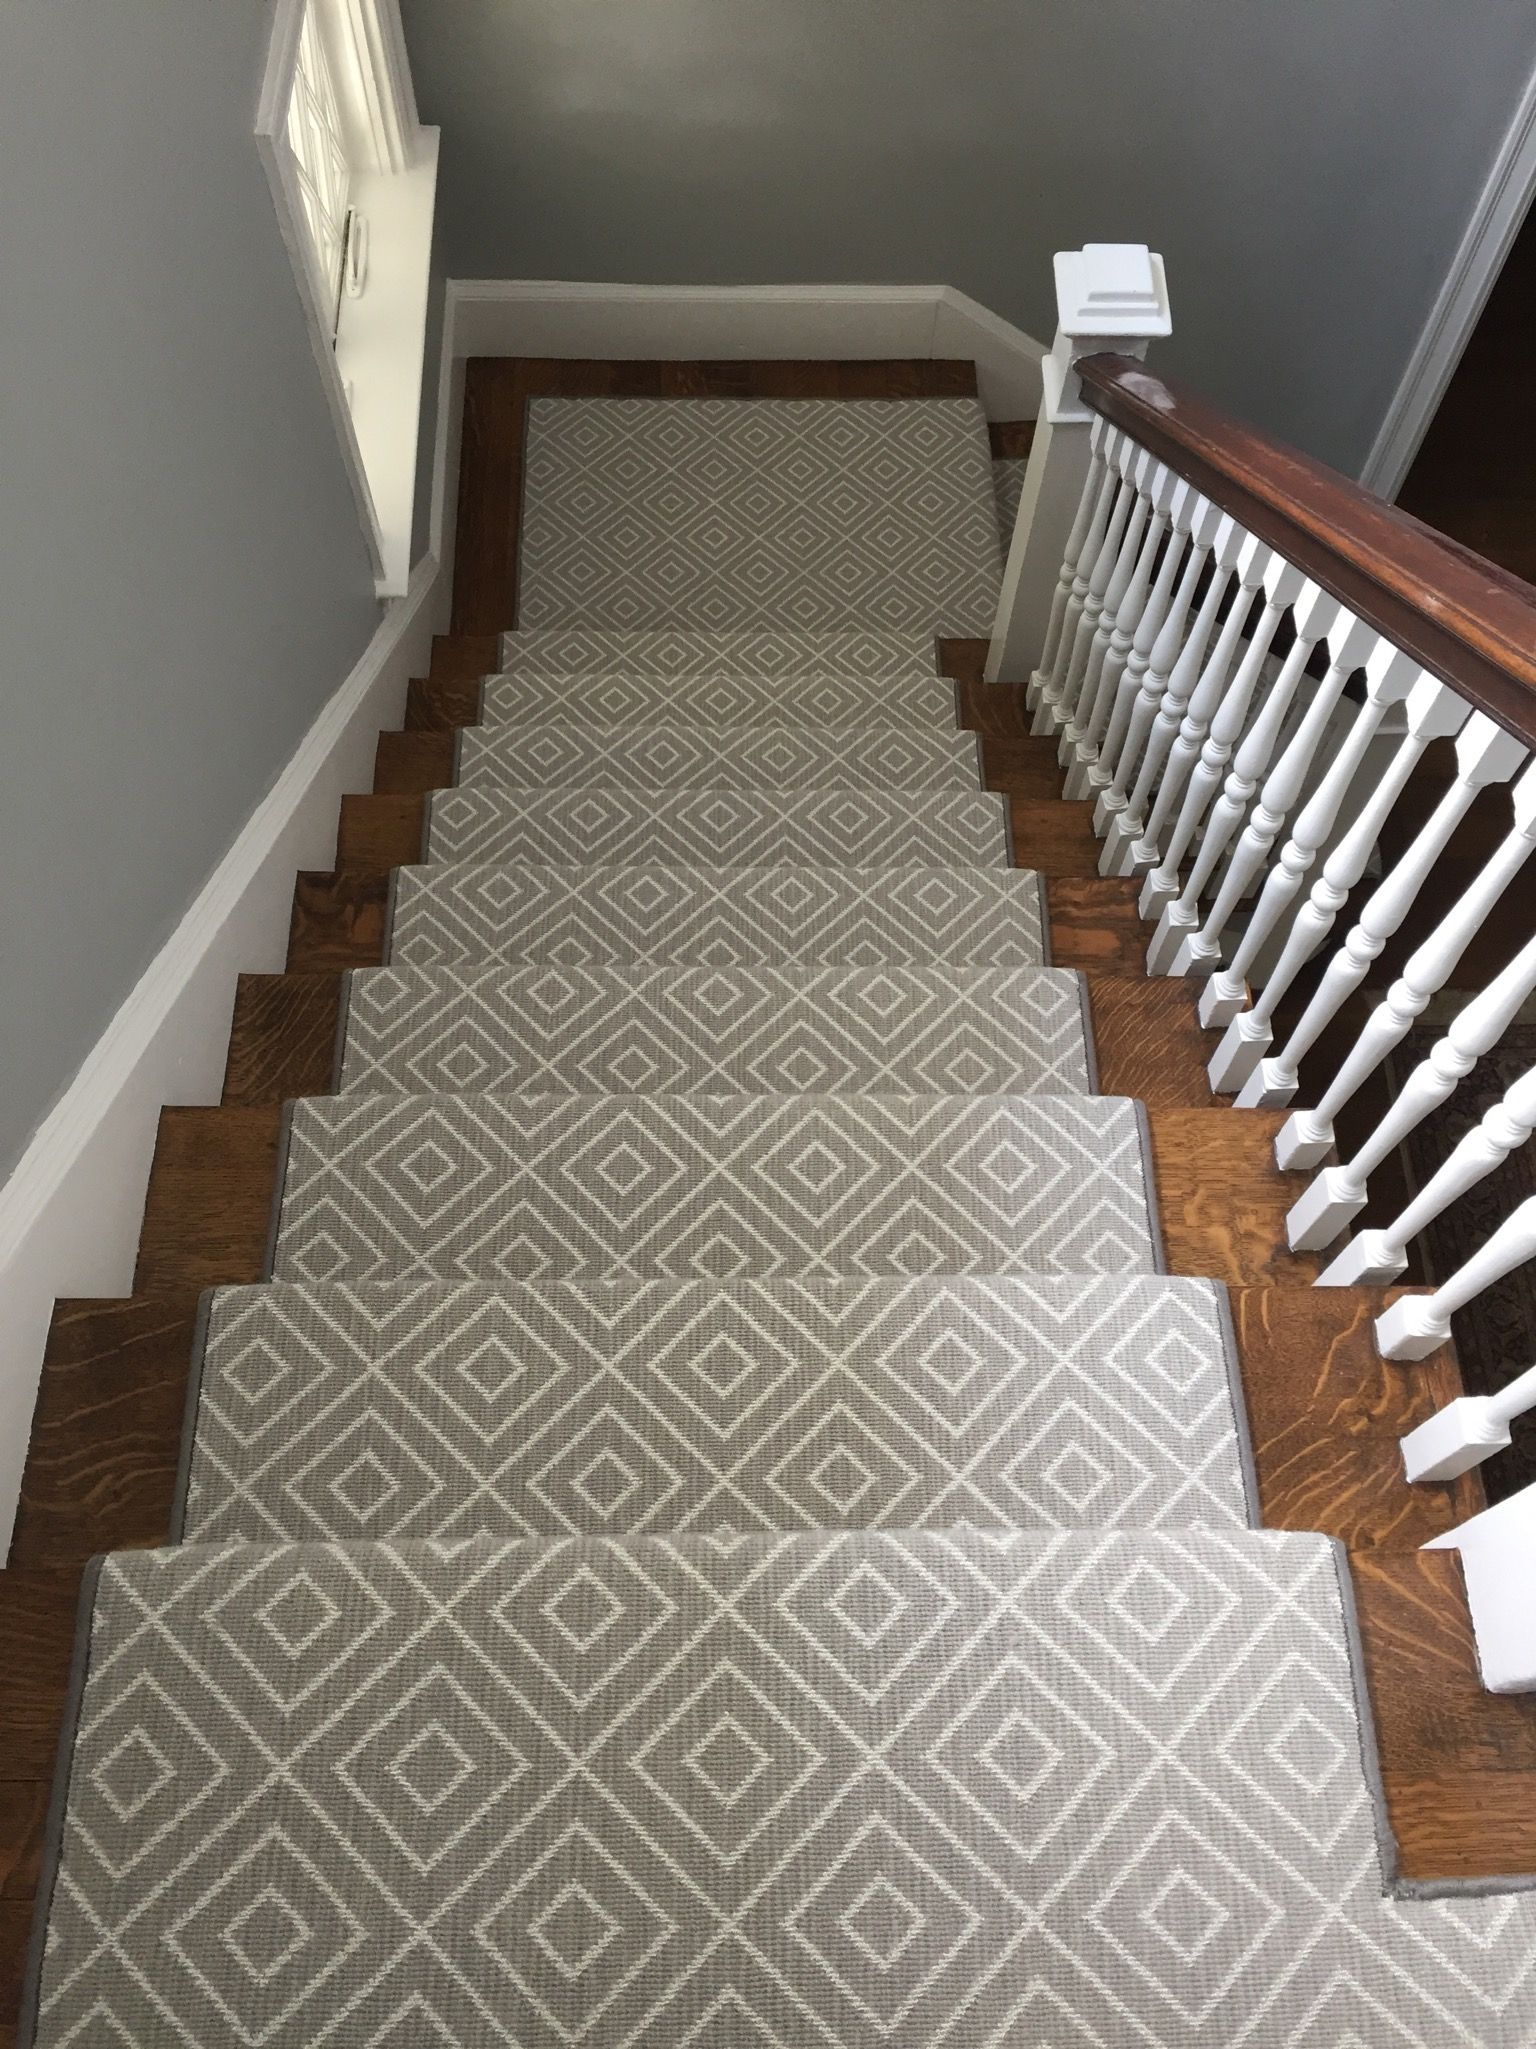 Best Pin By Scoval Staheli On Diy Home Projects Carpet Stairs 400 x 300